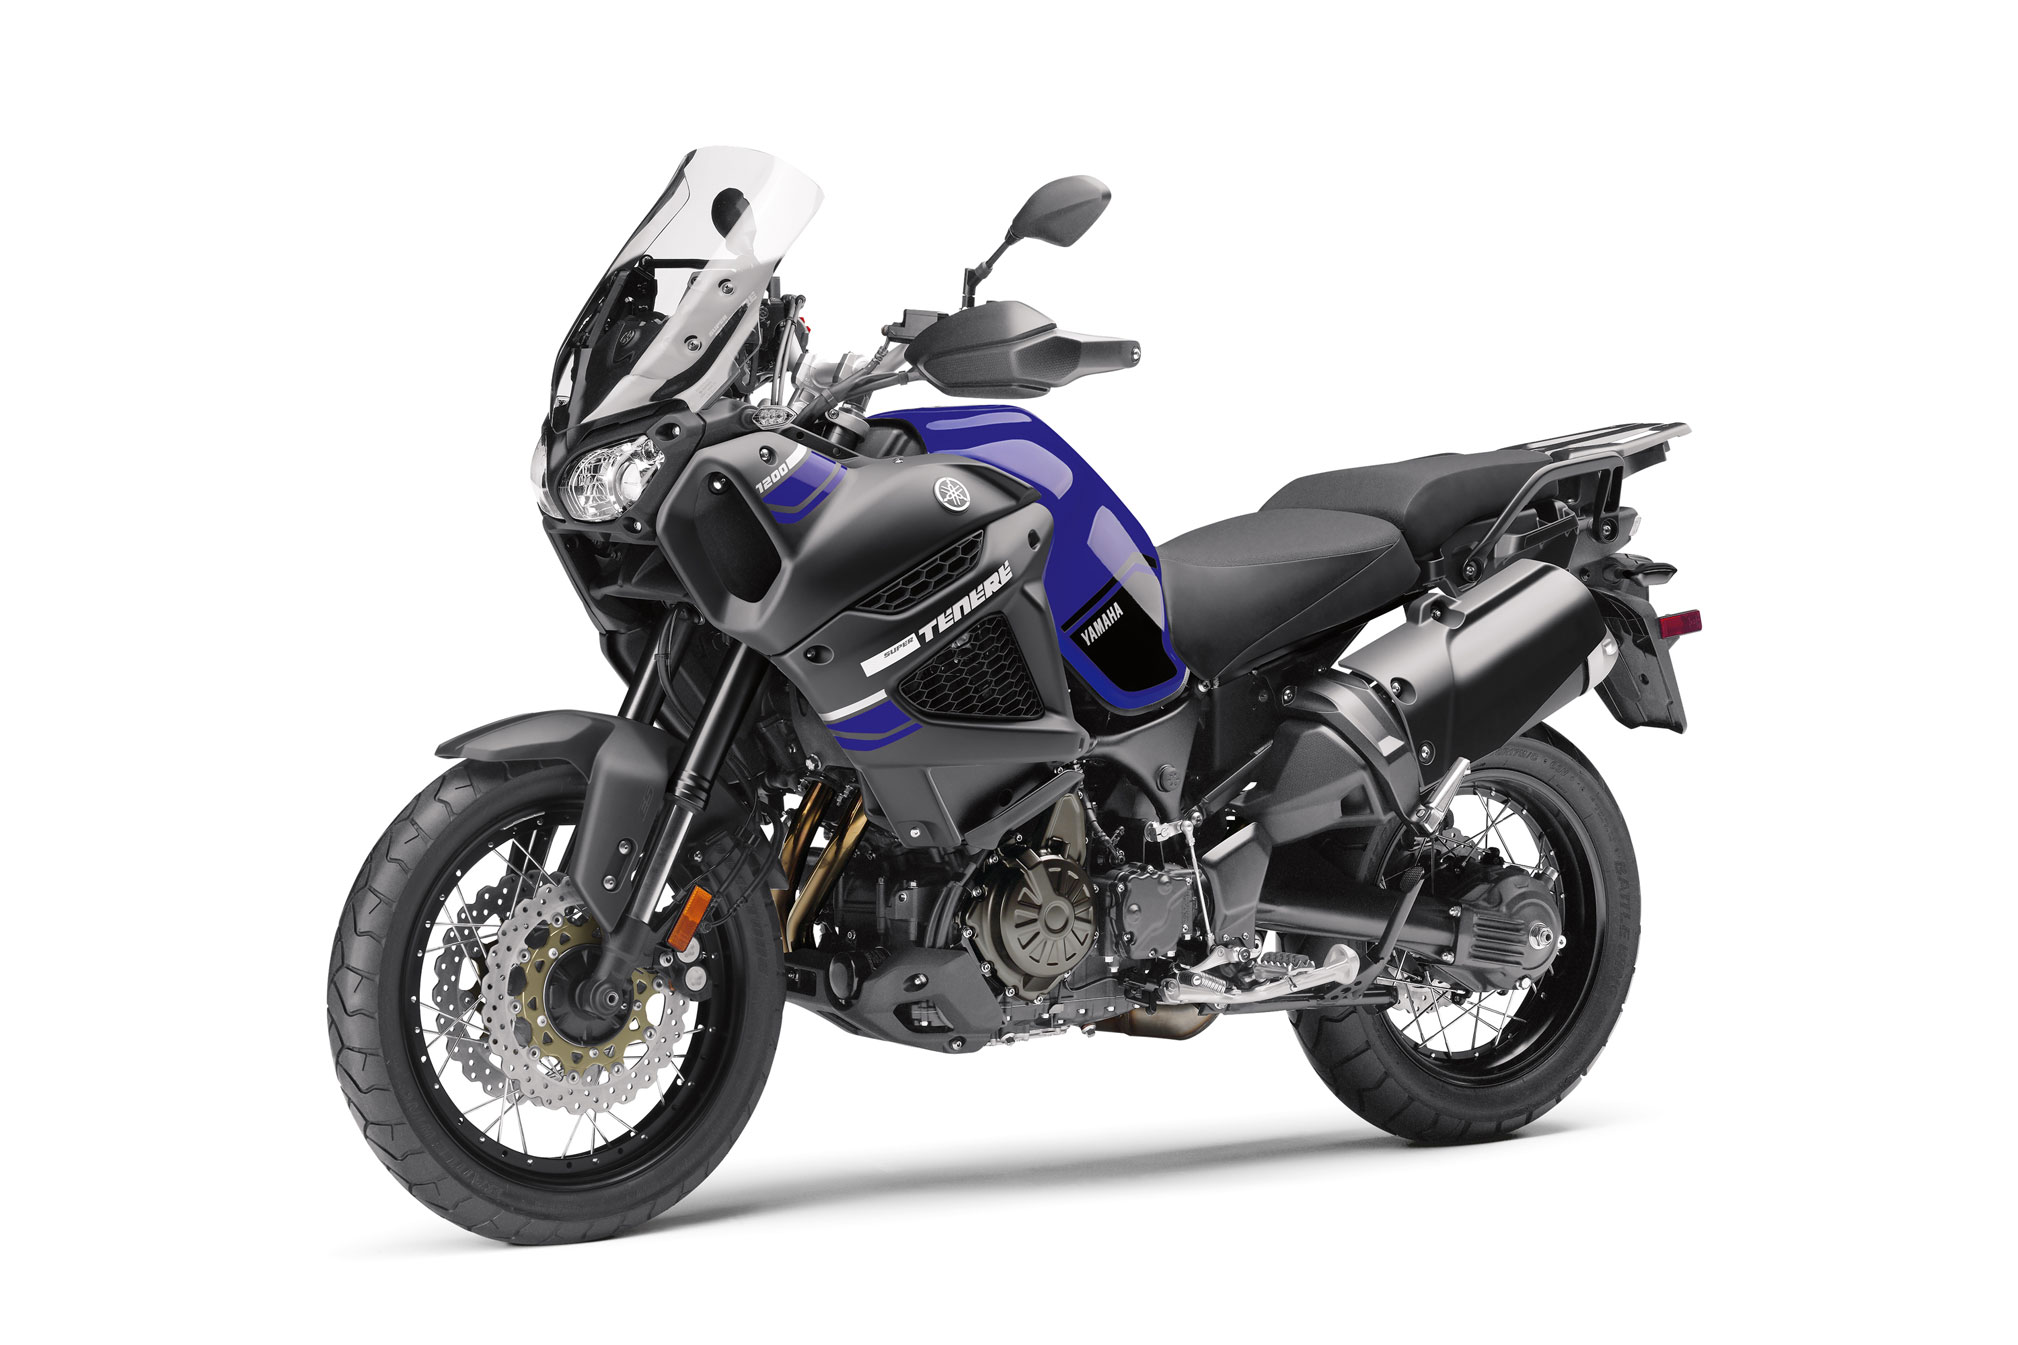 Yamaha Super Tenere Review >> 2018 Yamaha Super Tenere ES Review • TotalMotorcycle